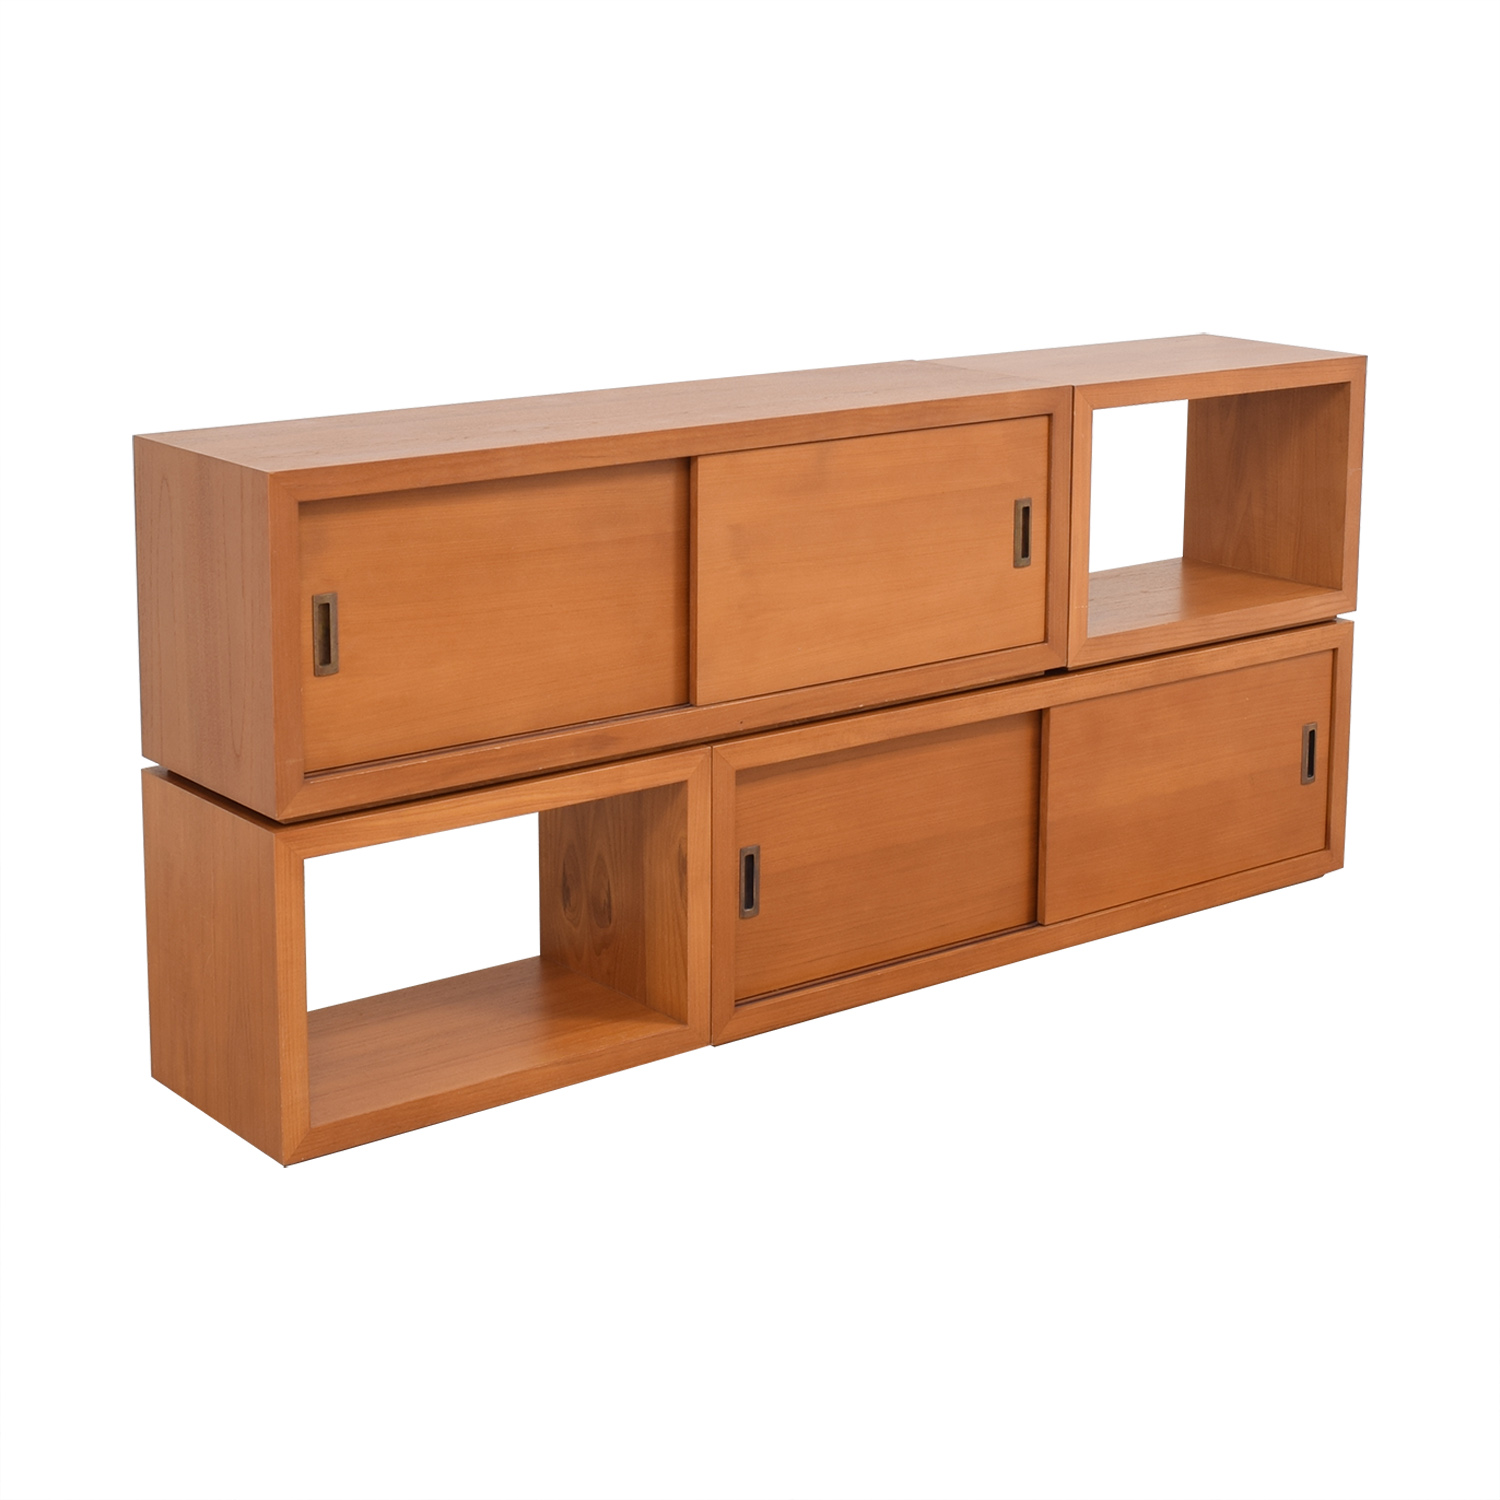 Crate & Barrel Crate & Barrel Aspect Modular Storage Unit Media Units